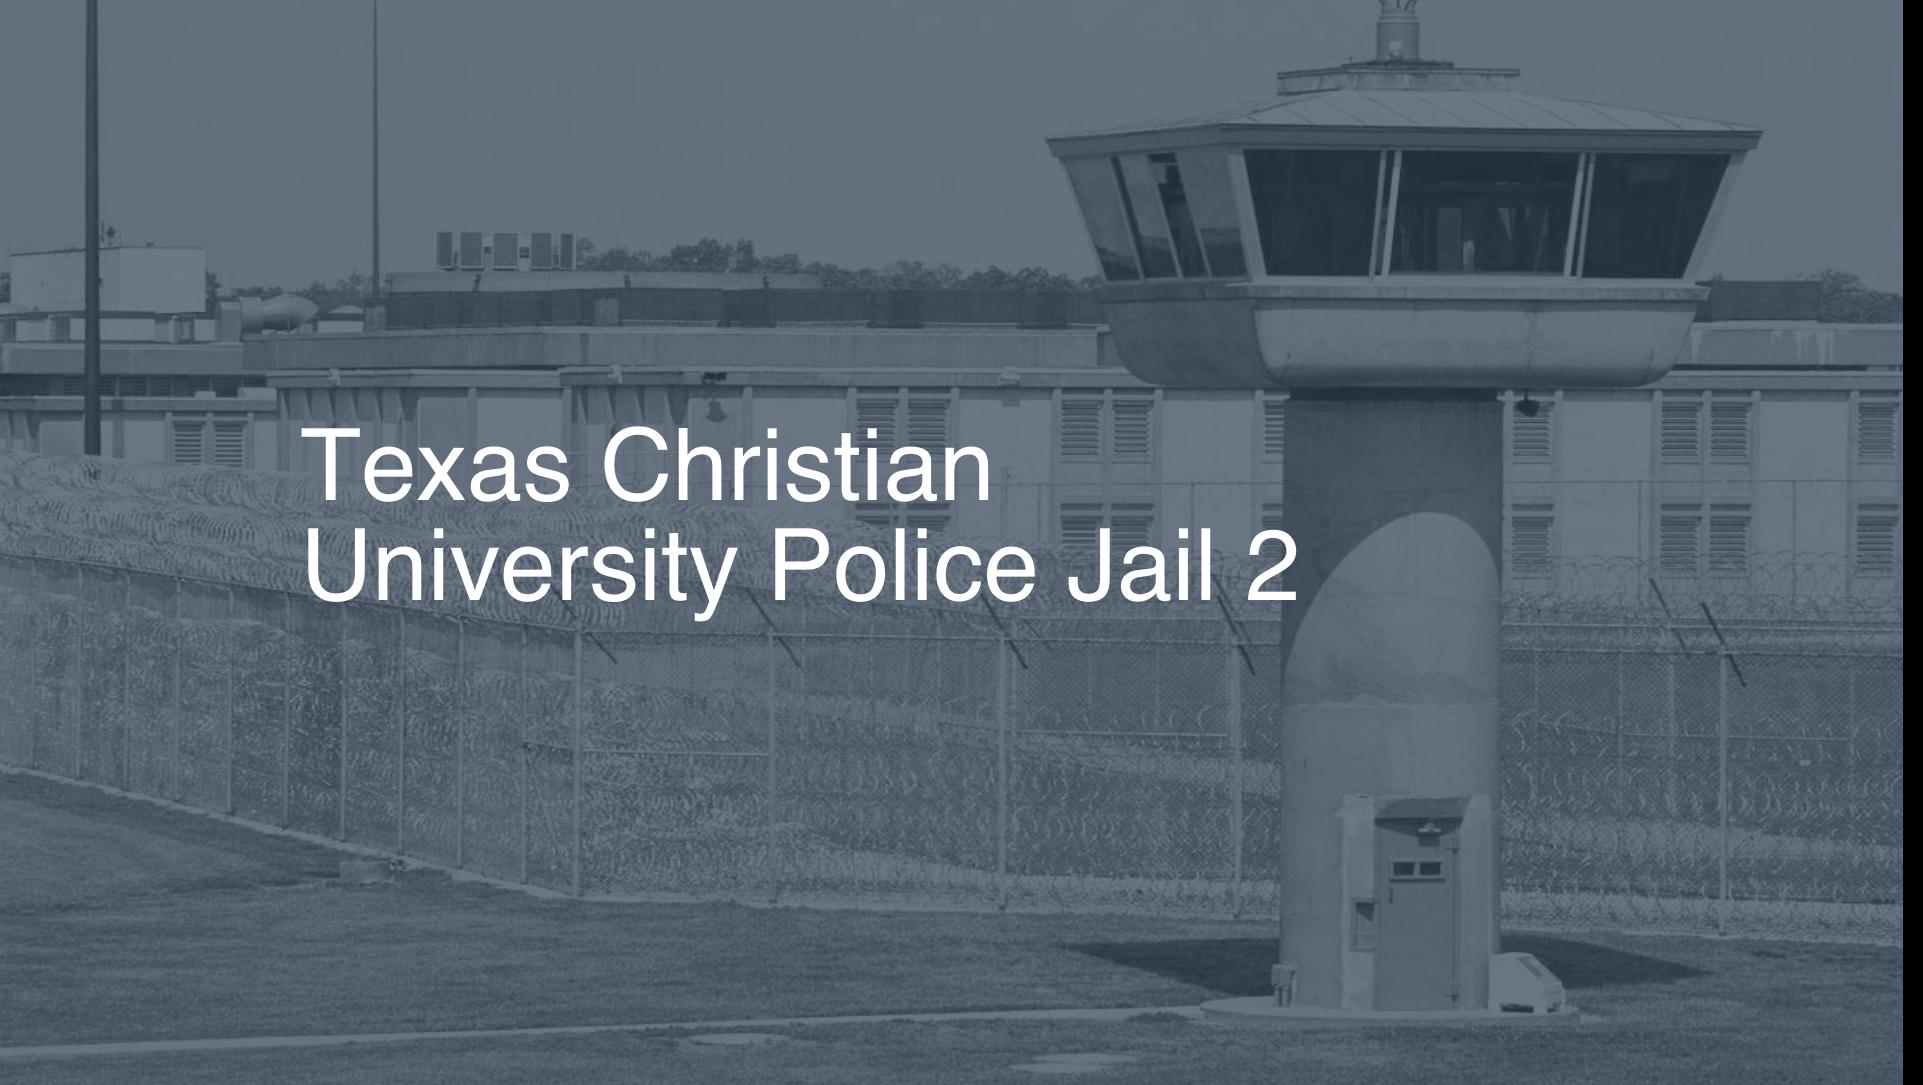 Texas Christian University Police Jail correctional facility picture